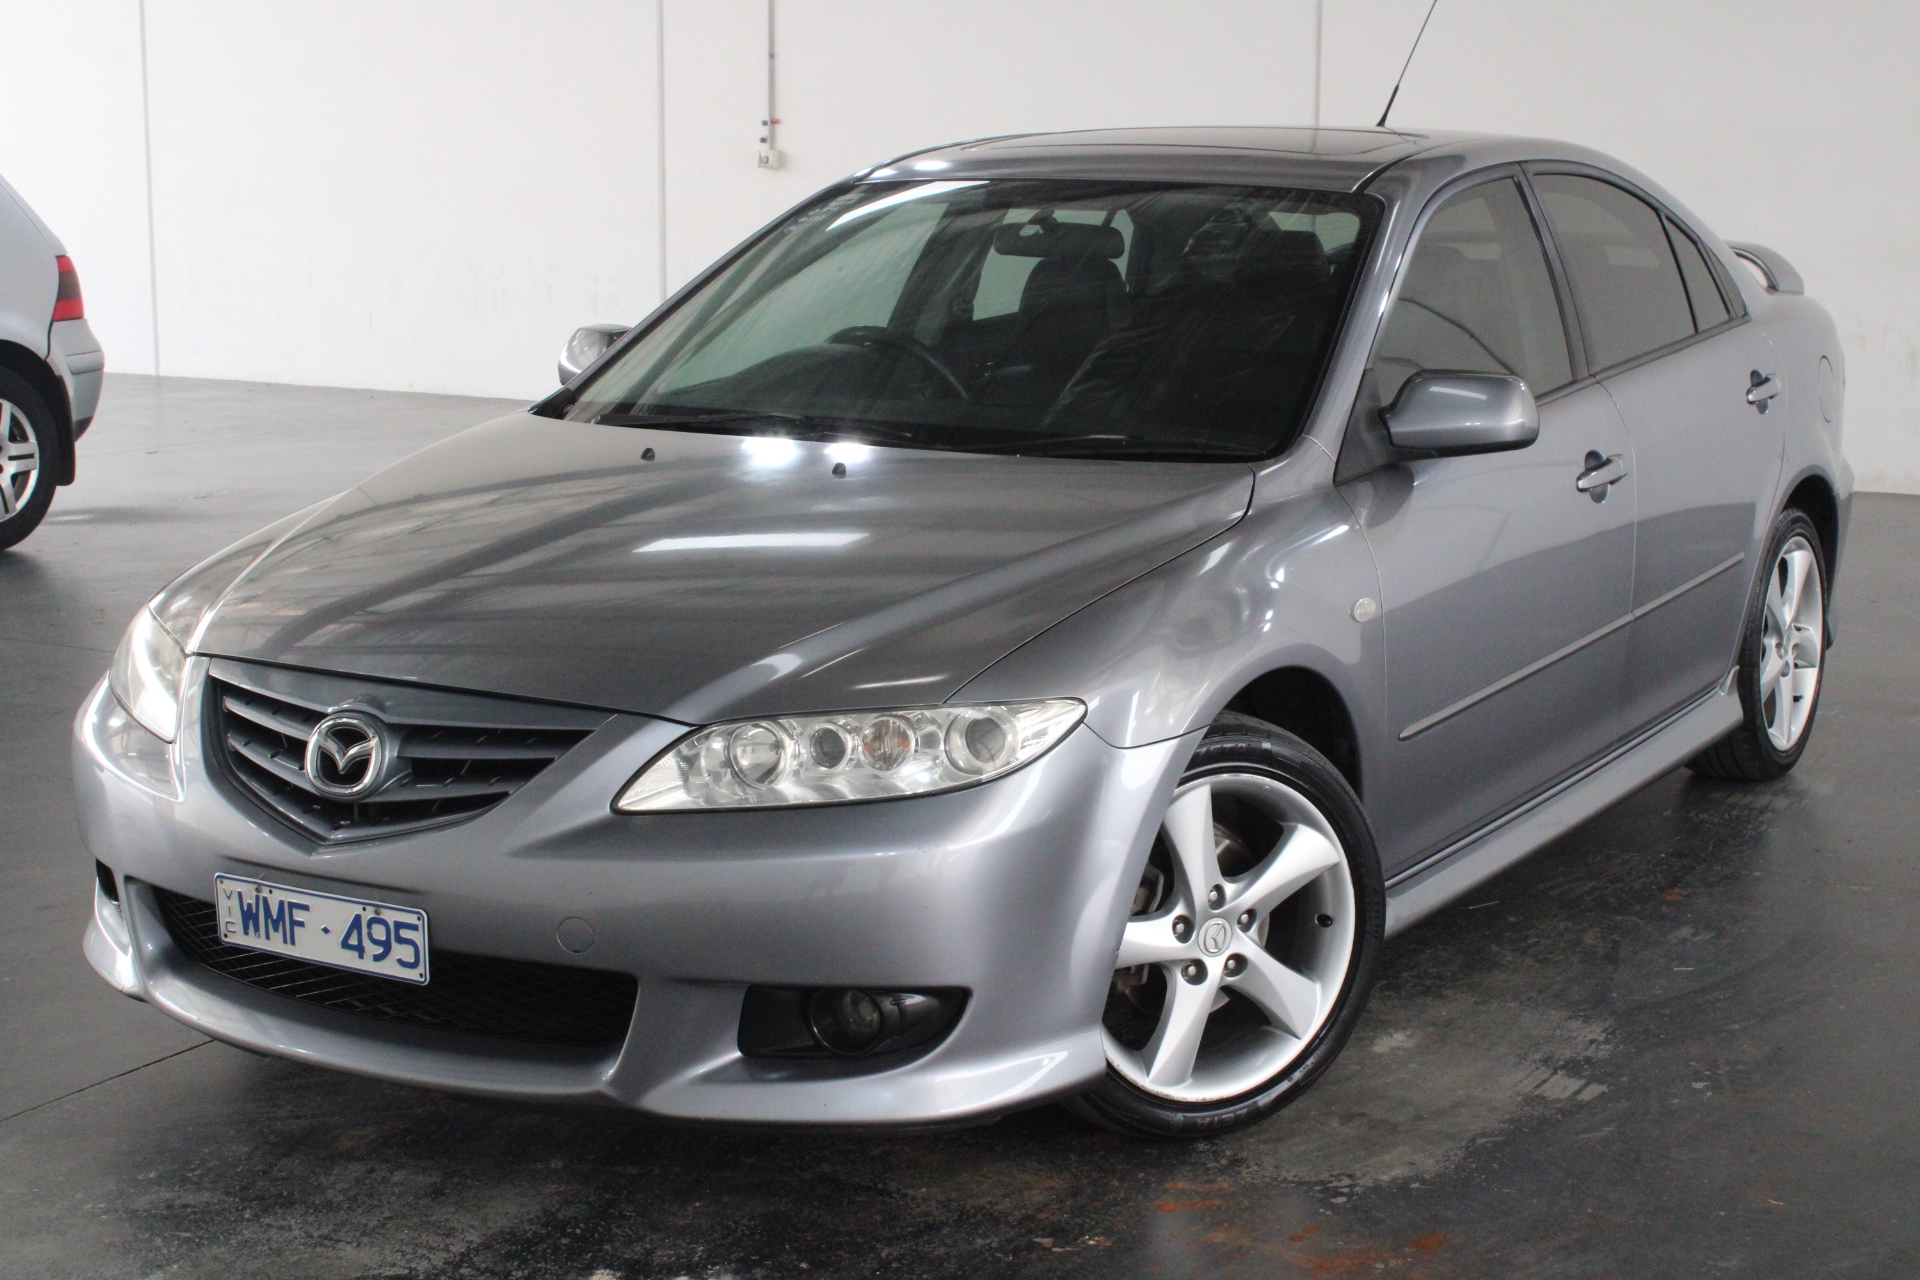 2004 Mazda 6 Luxury Sports GG Manual Hatchback